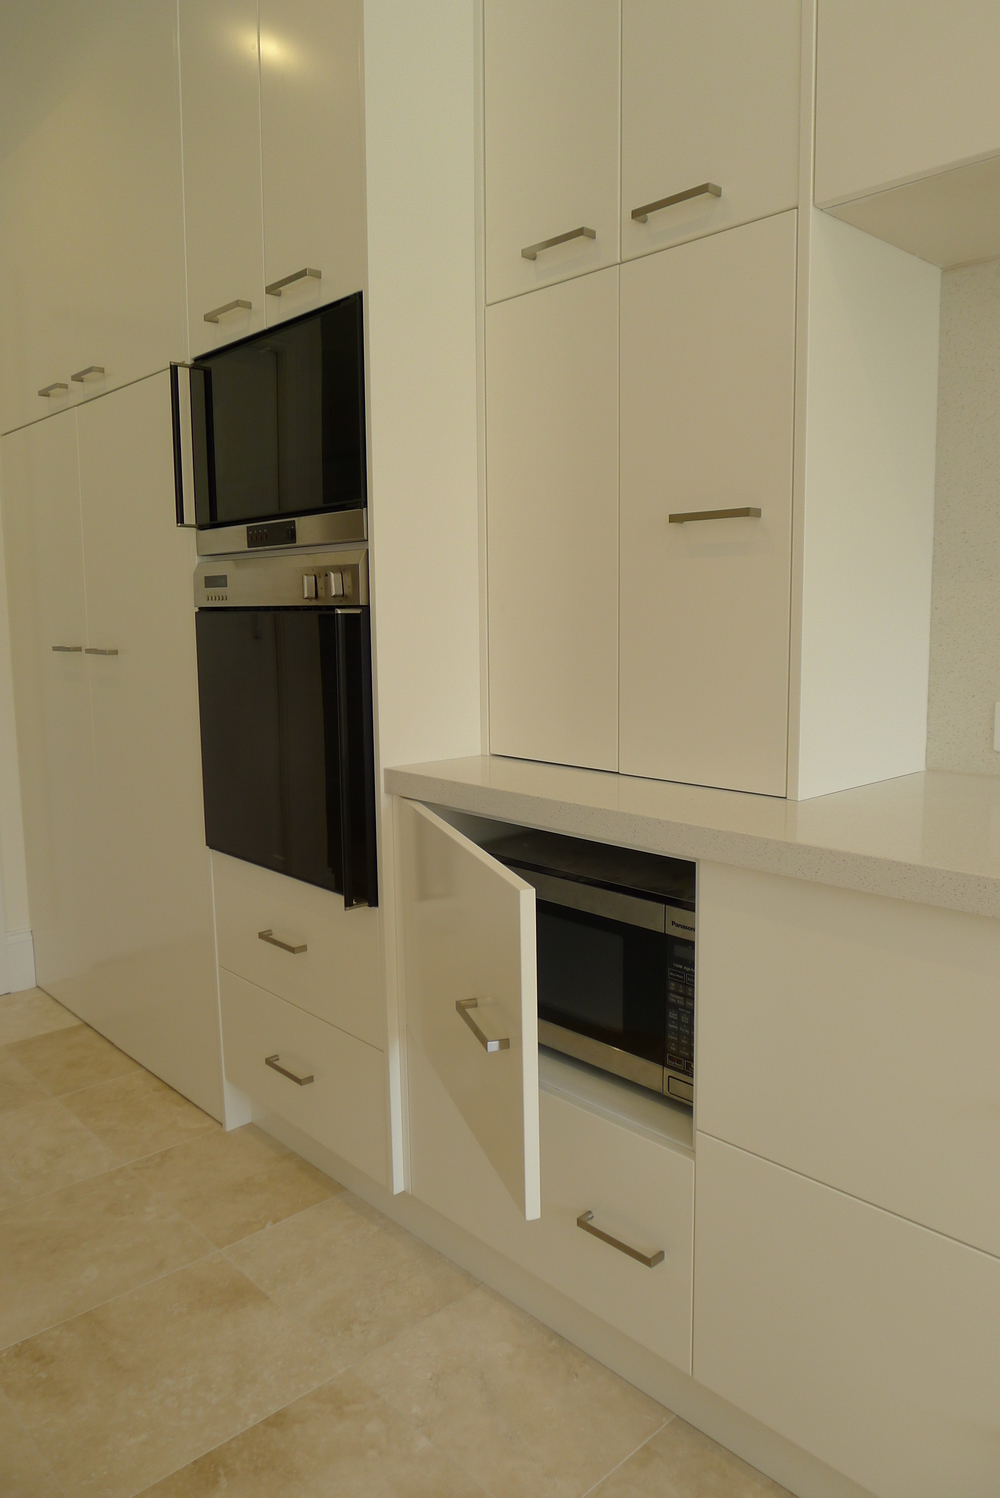 Kitchen Vaucluse City Kitchens a2.JPG